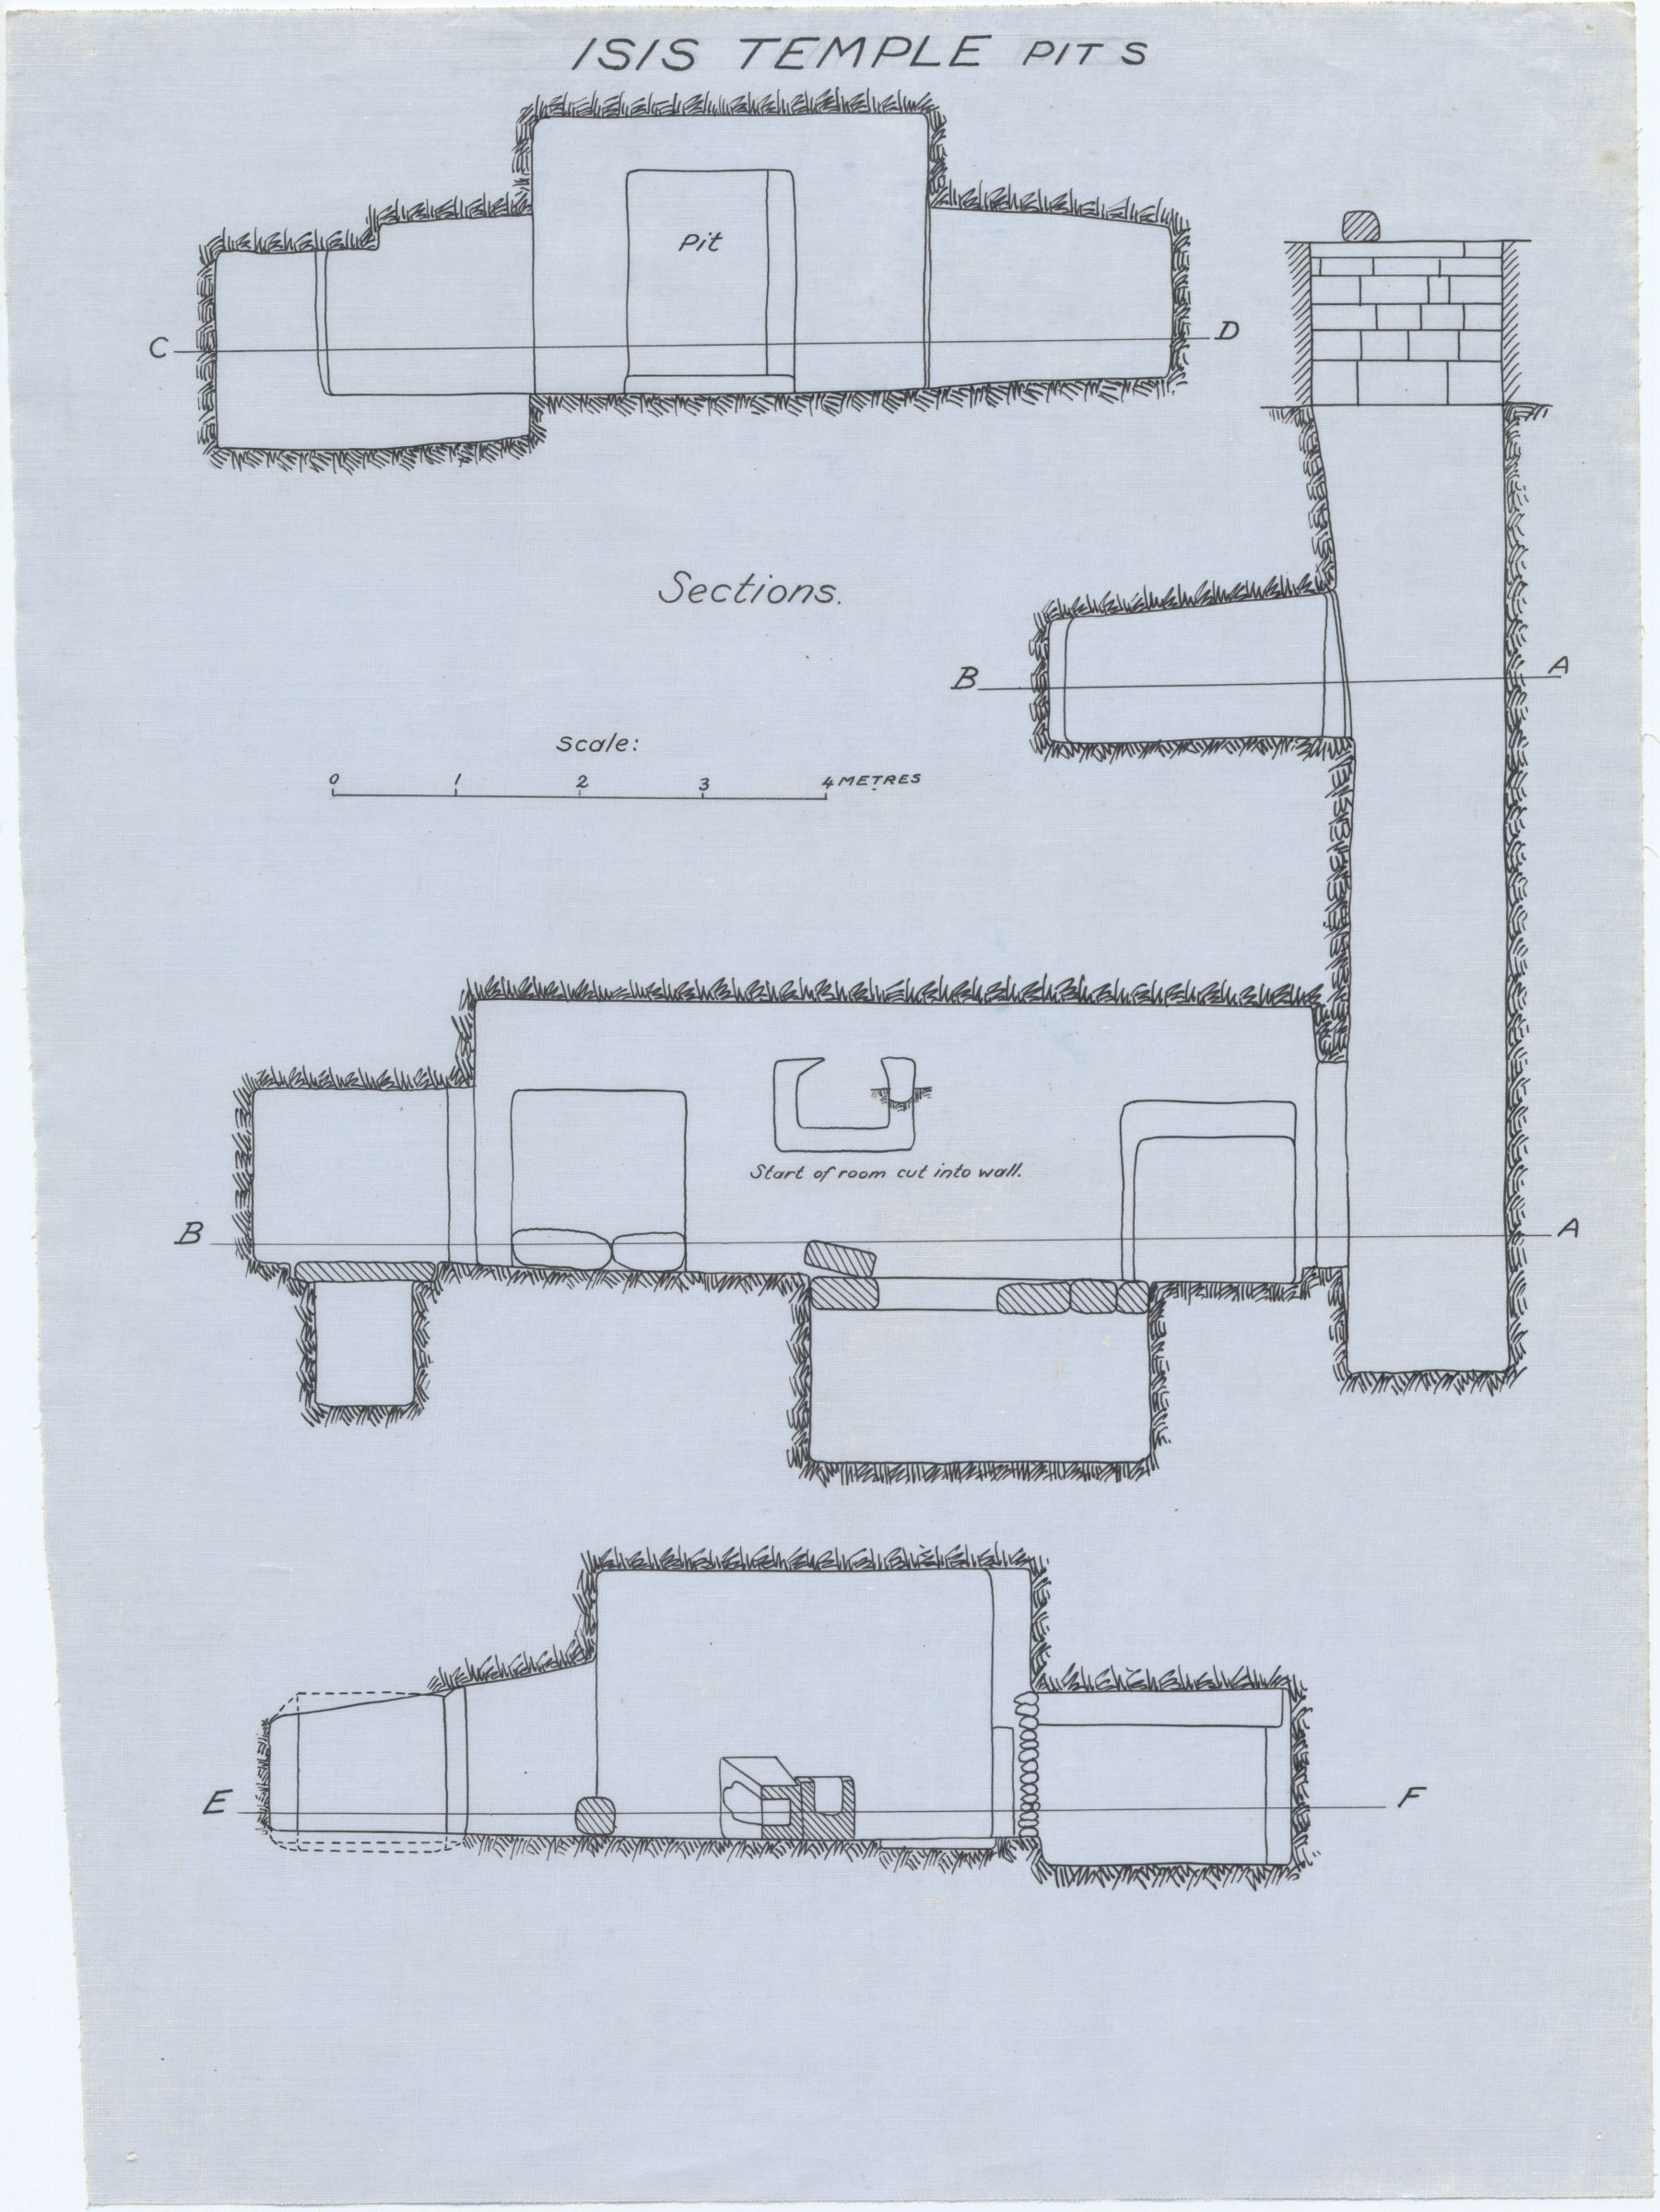 Maps and plans: Isis Temple, Pit S